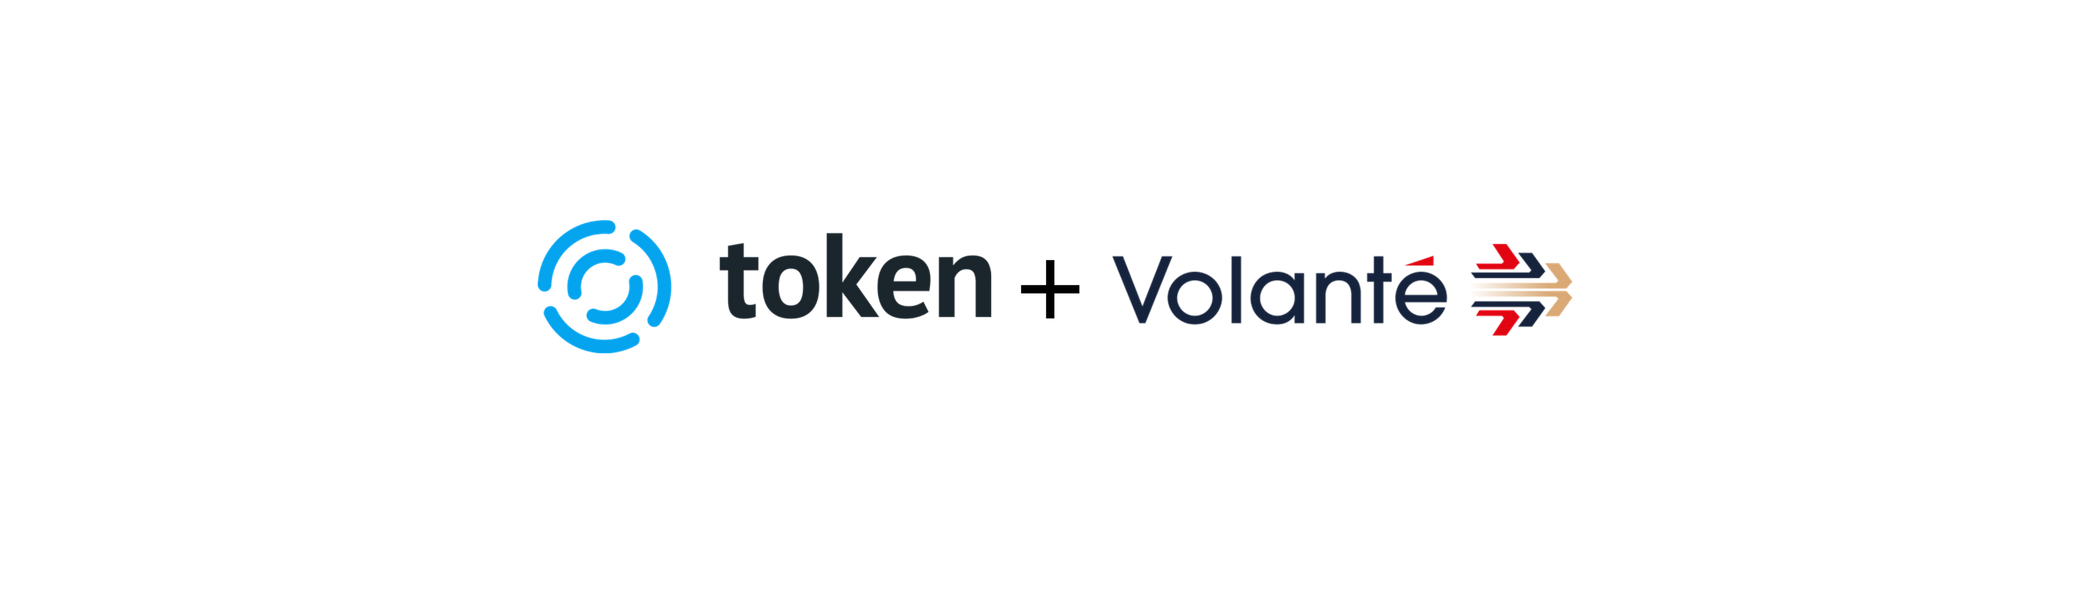 Volante Technologies' VolPay Hub fully tested, qualified and integrated with TokenOS to accelerate adoption of Open Banking